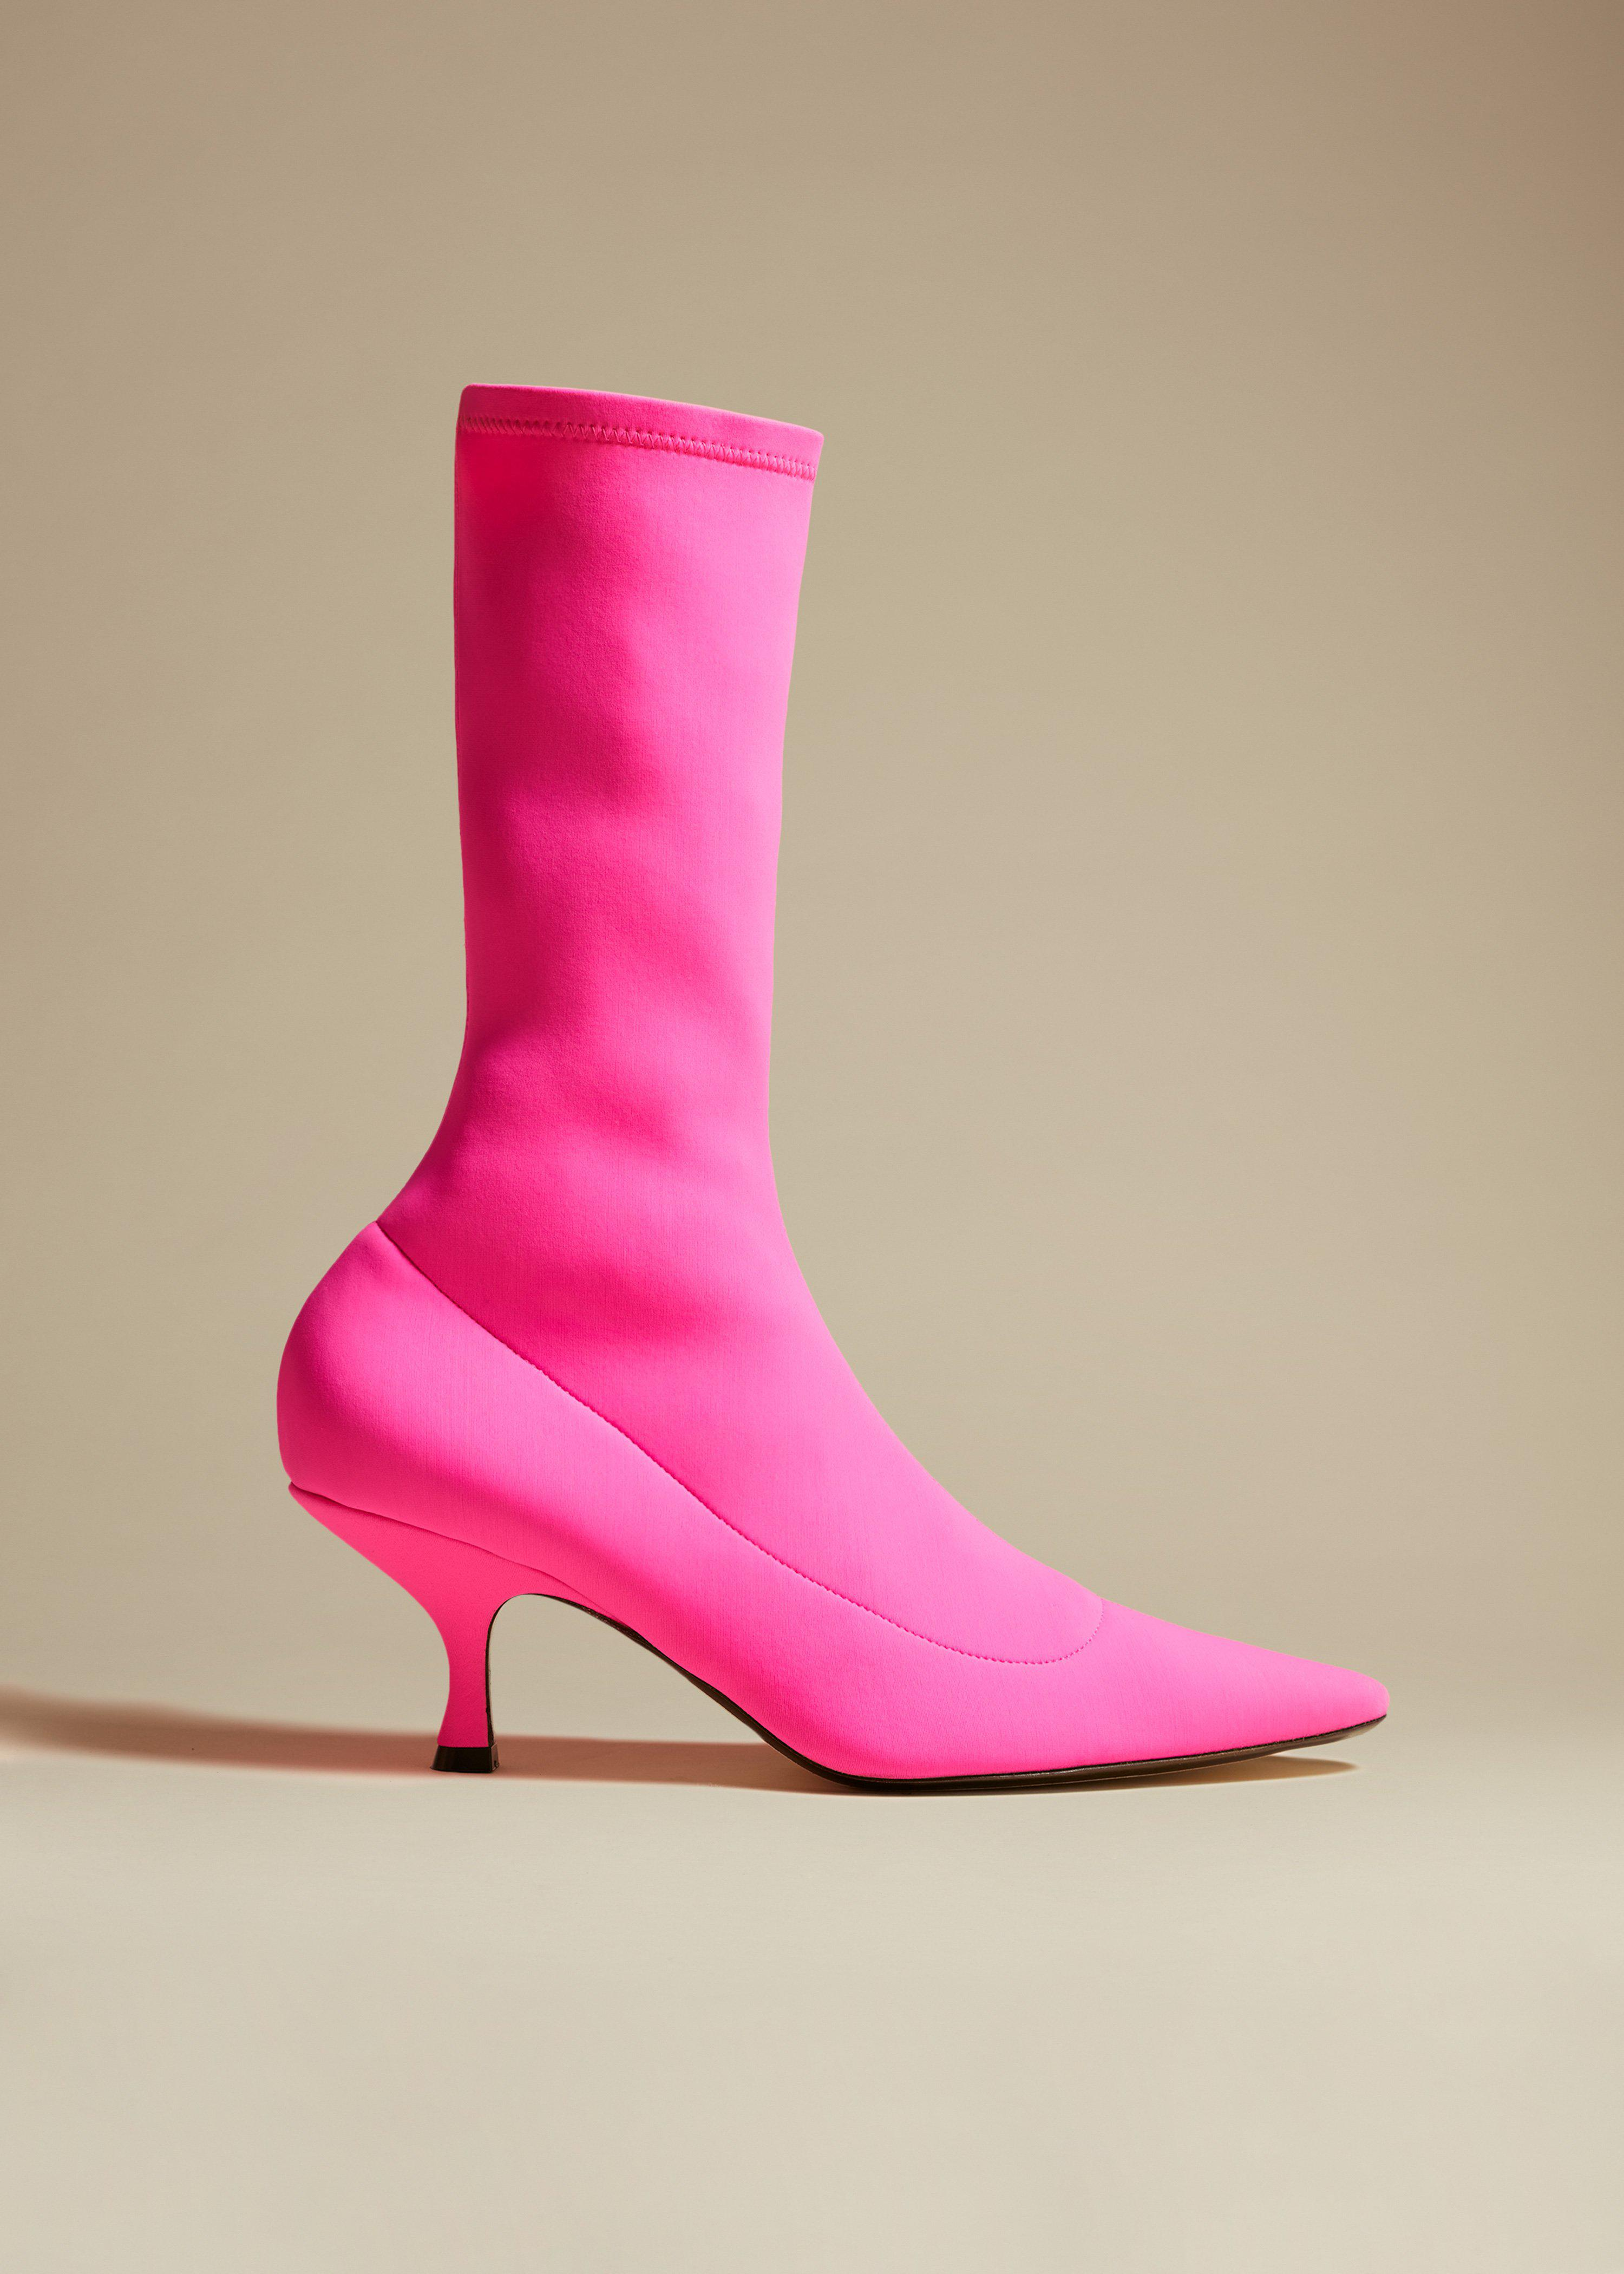 The Taylor Boot in Pink